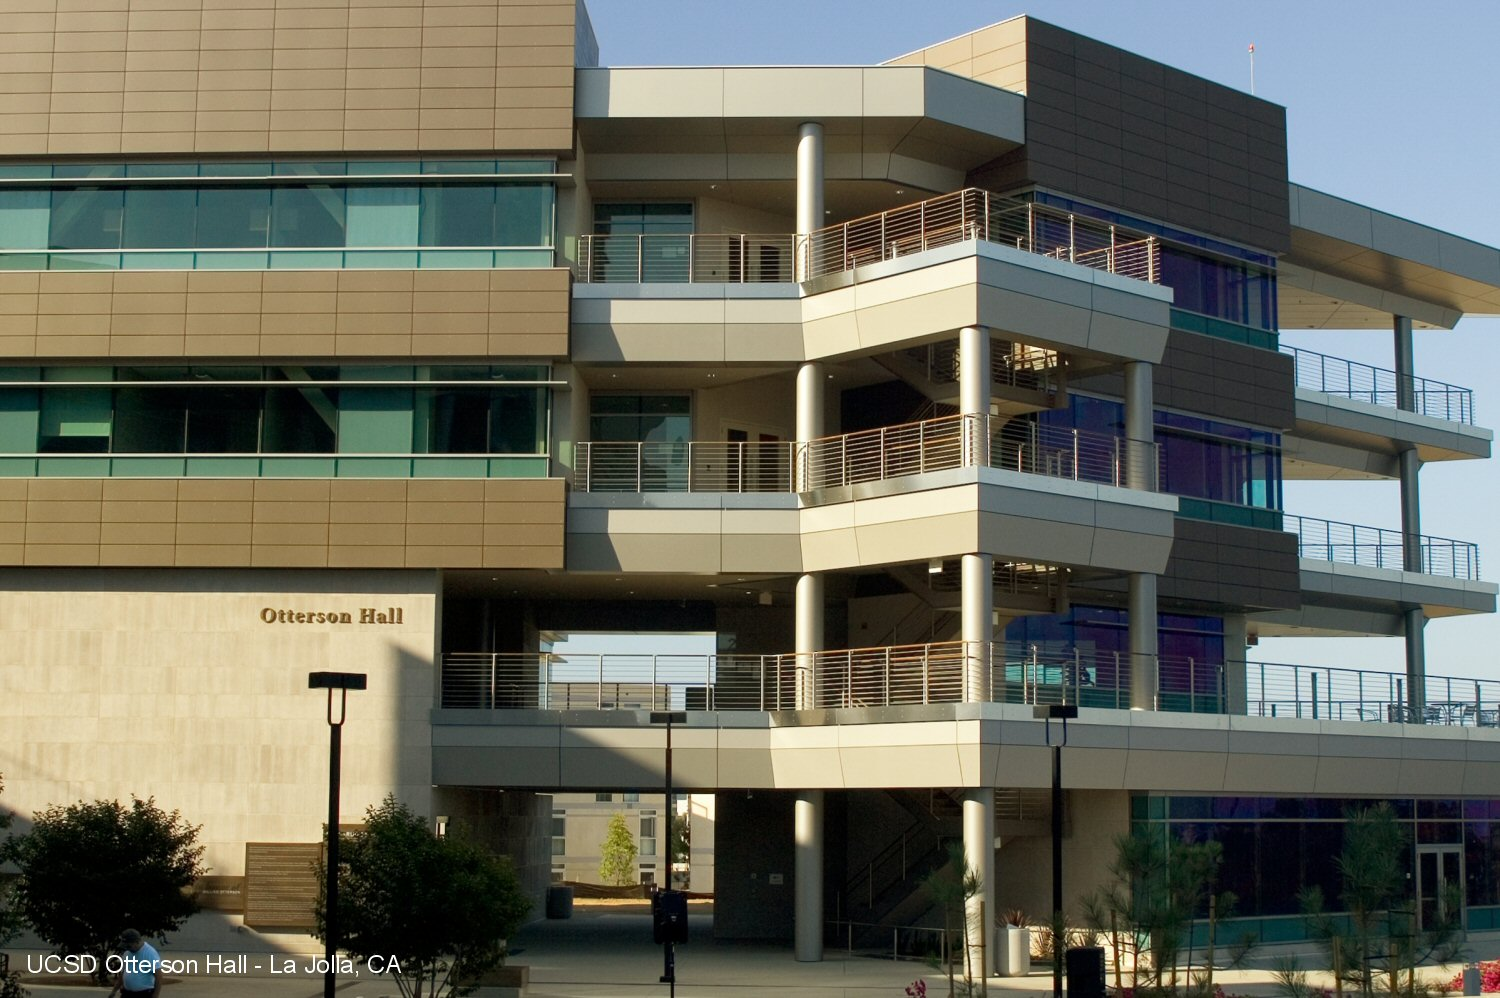 UCSD's Otterson Hall - San Diego